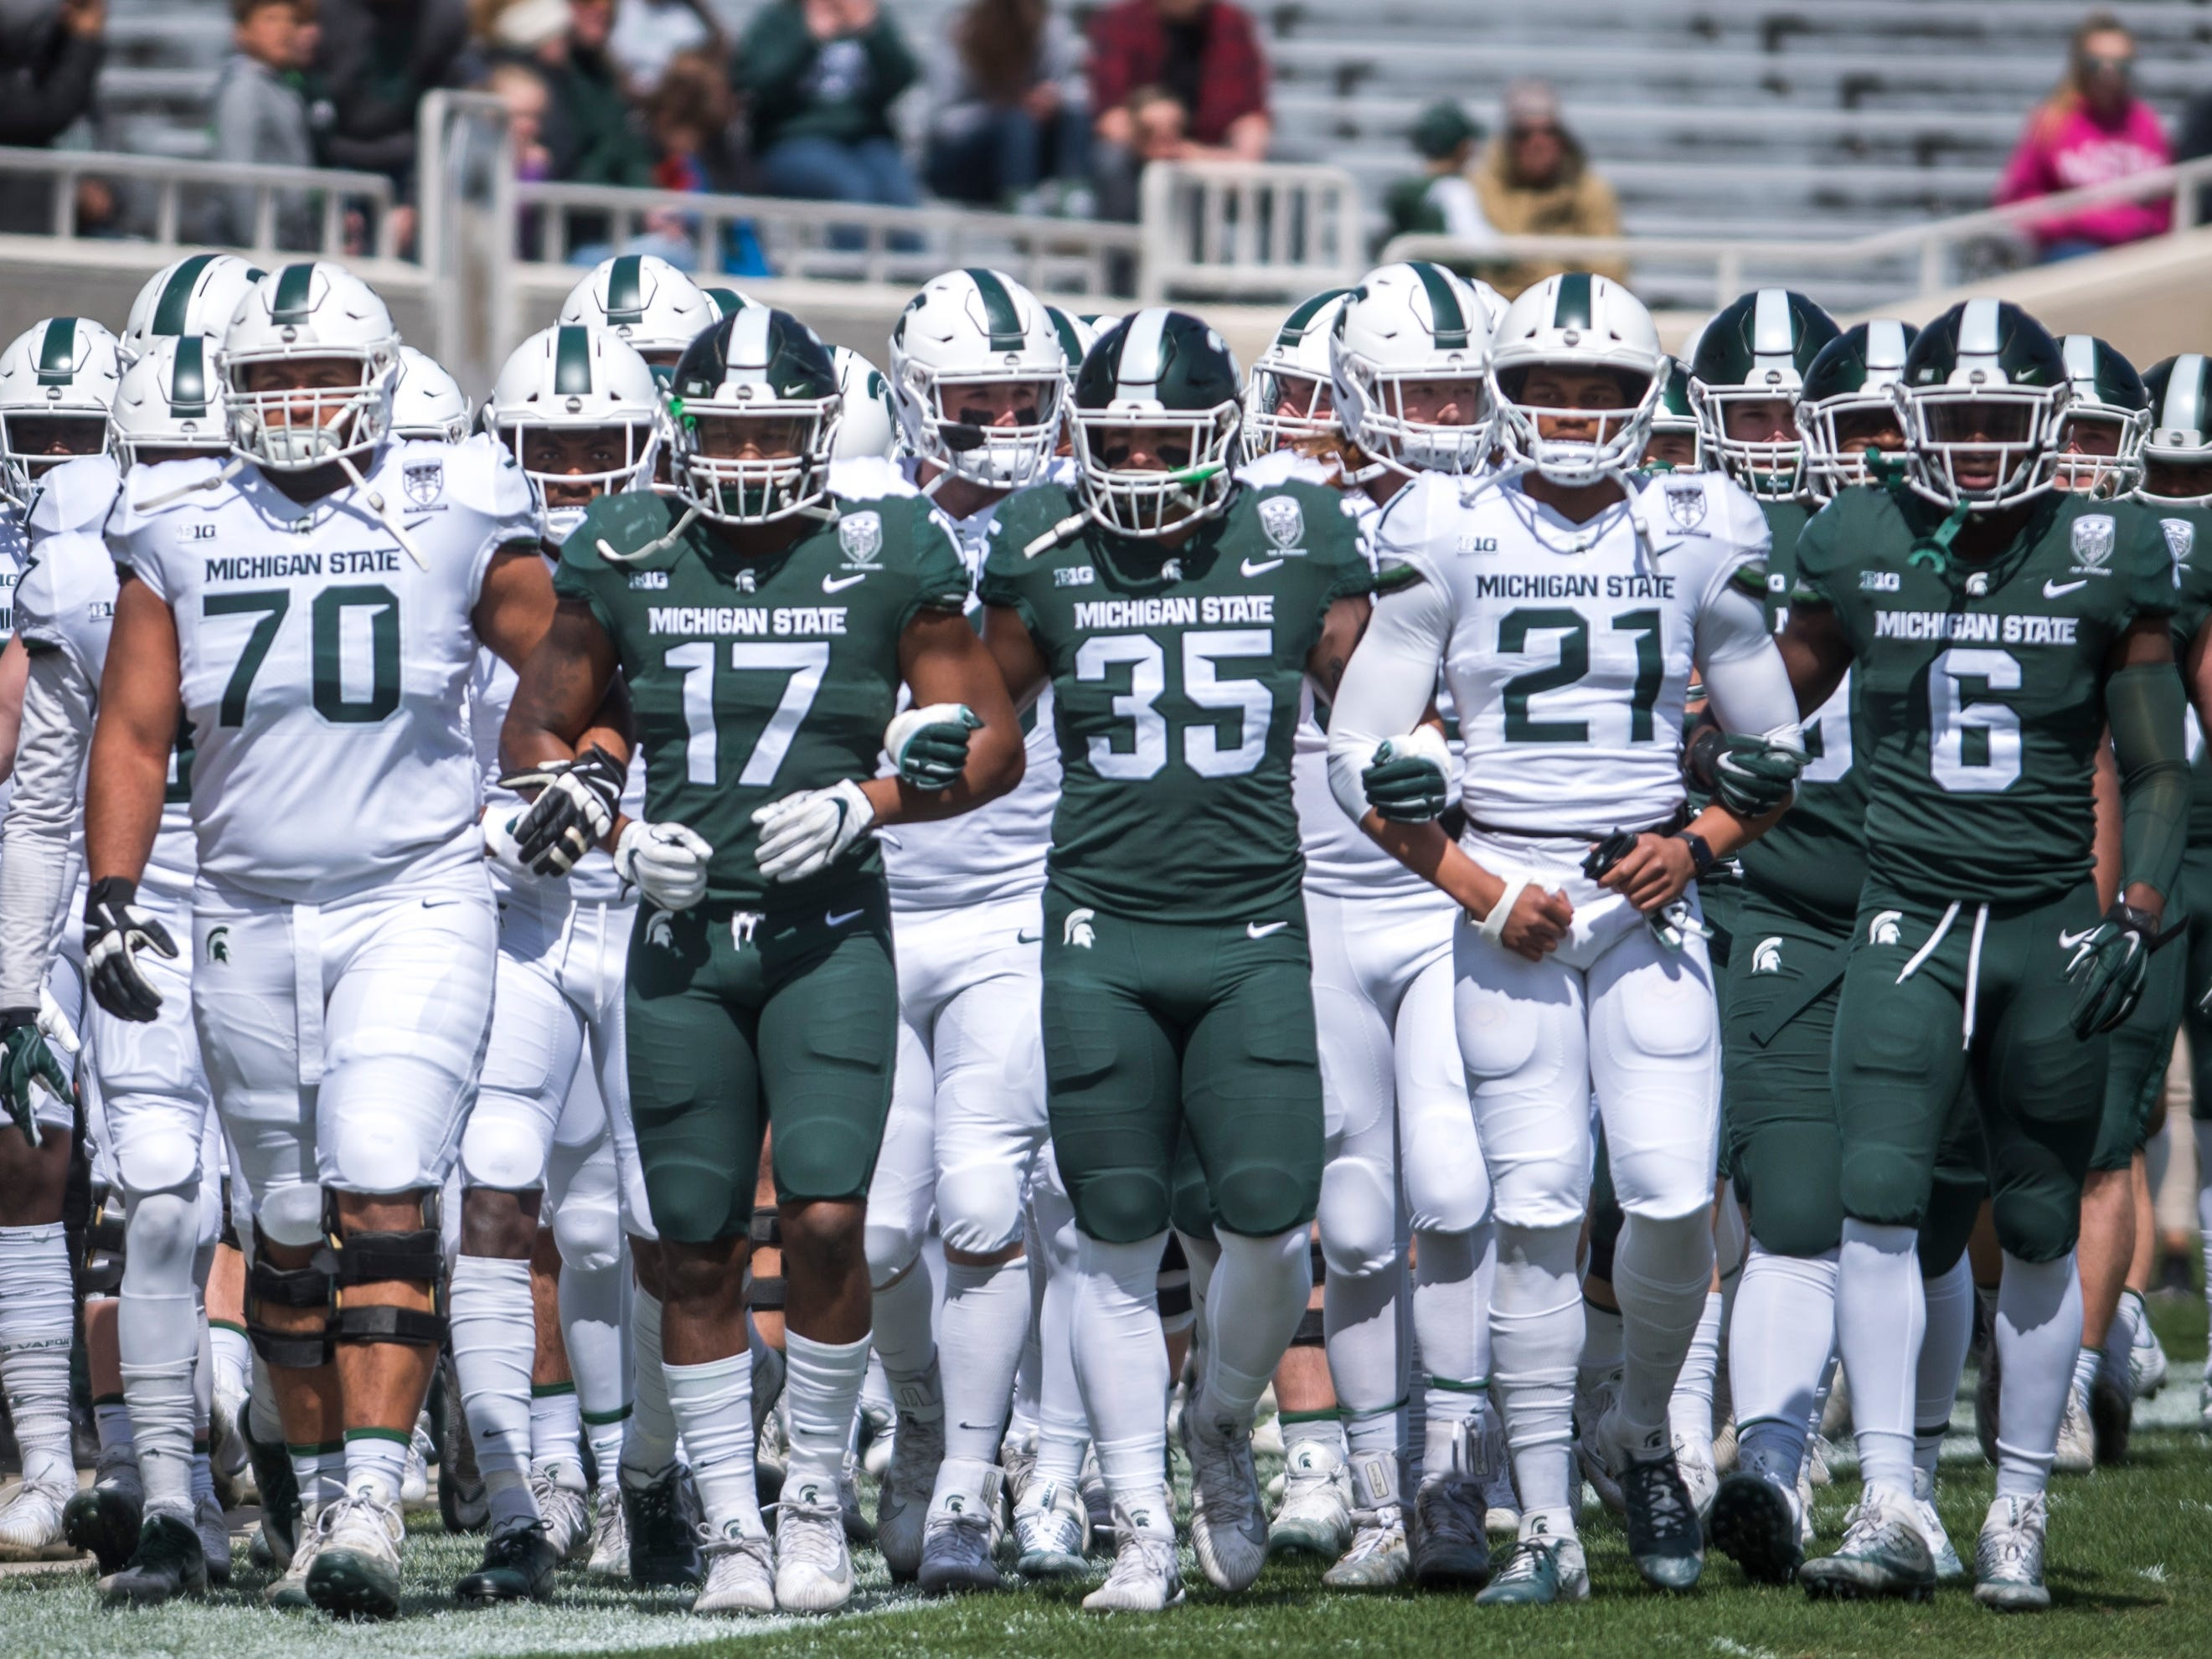 A group of Spartans enter the field.